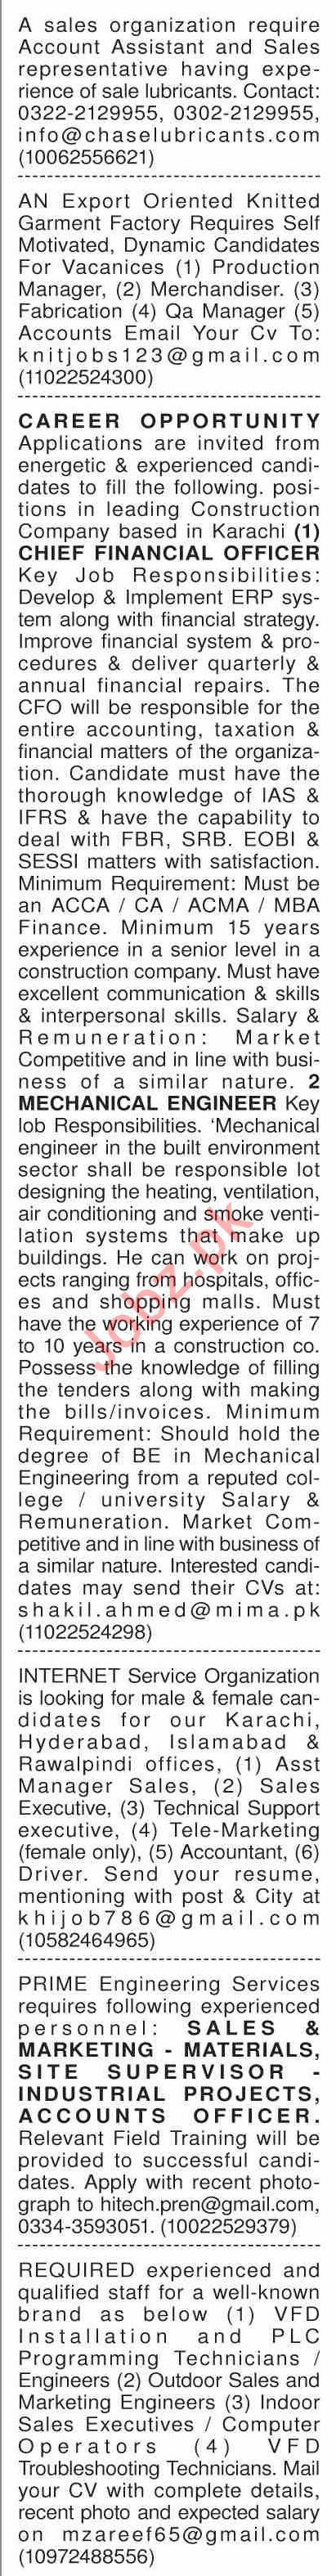 Dawn Sunday Classified Ads 21st July 2019 for Multiple Staff